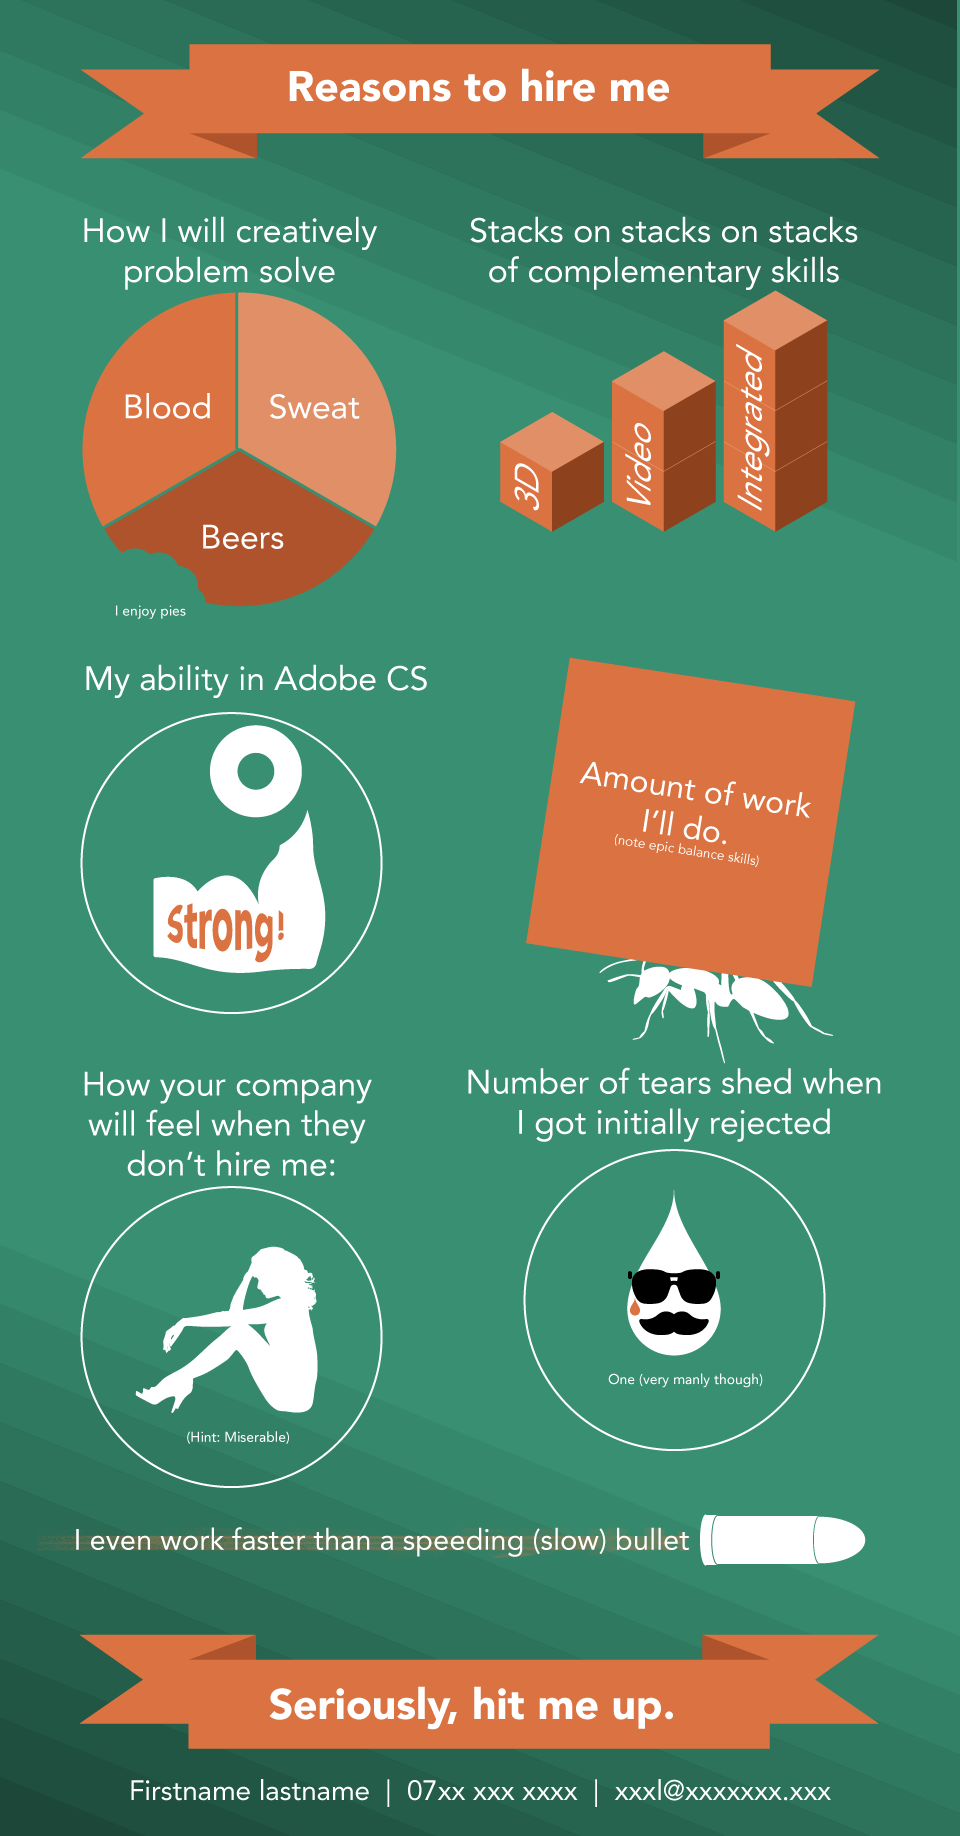 Post job rejection infographic (from Reddit) Problem